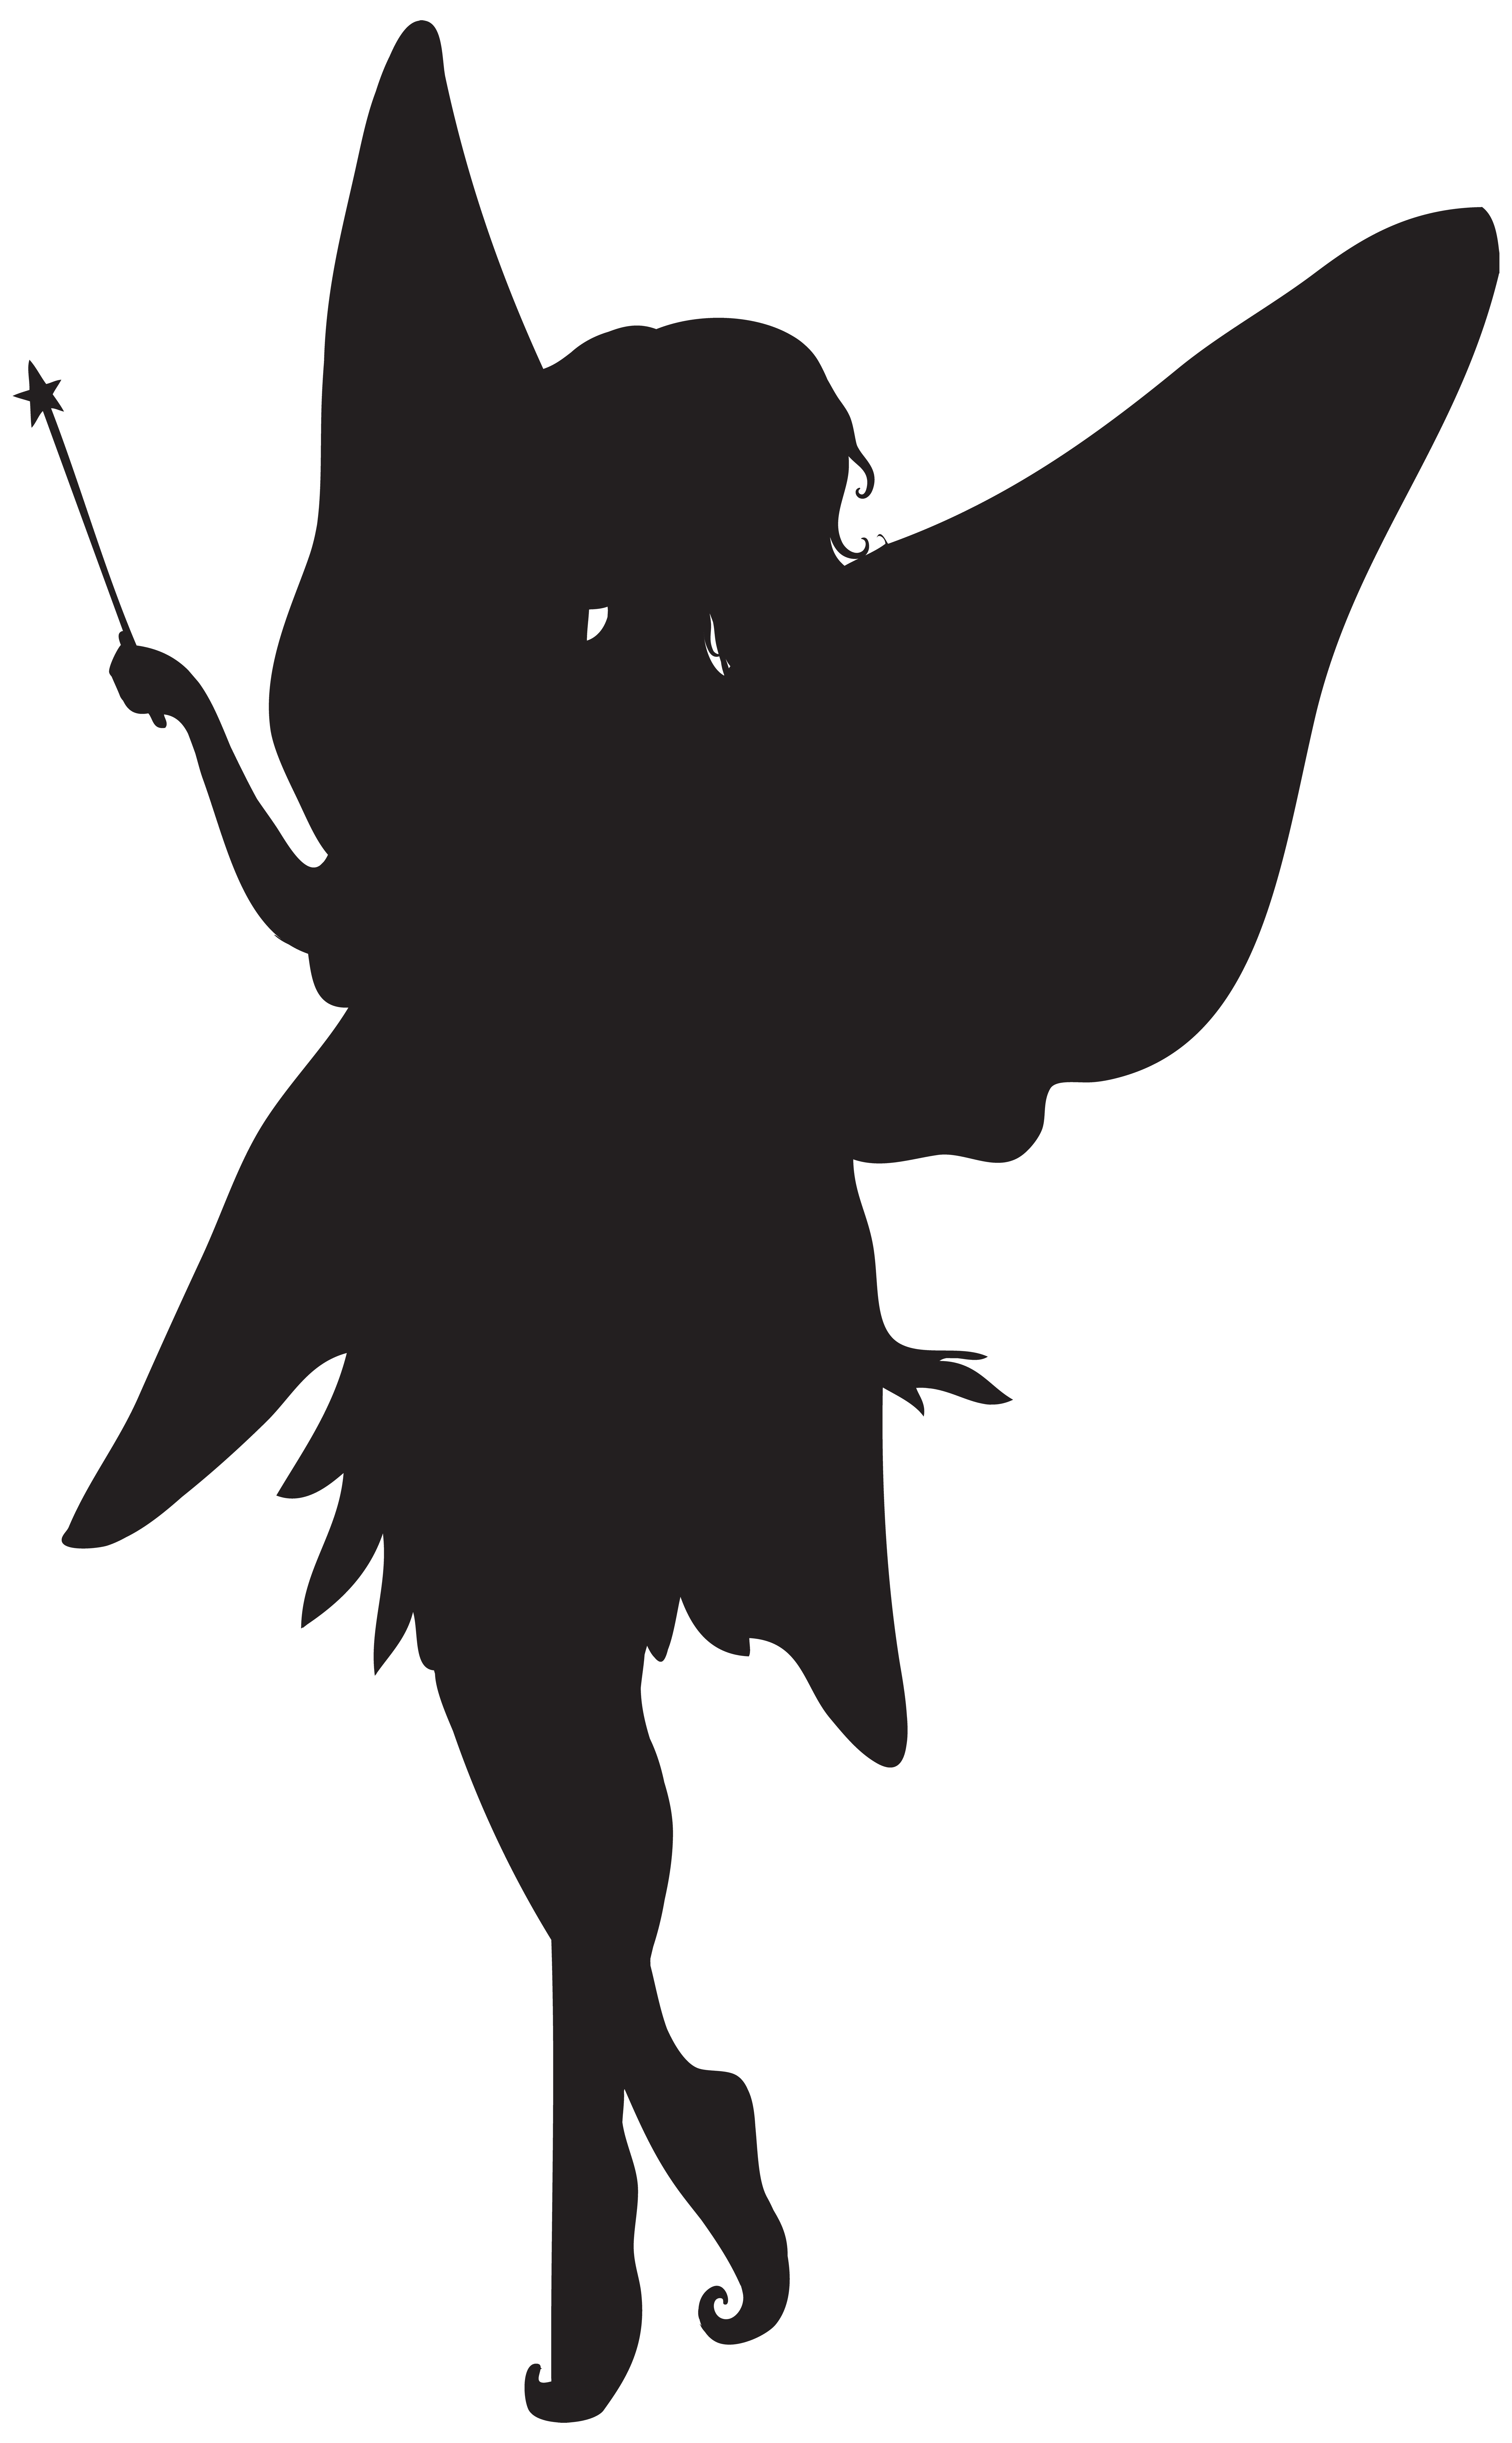 Forest fairy silhouette png. Piano clipart broken